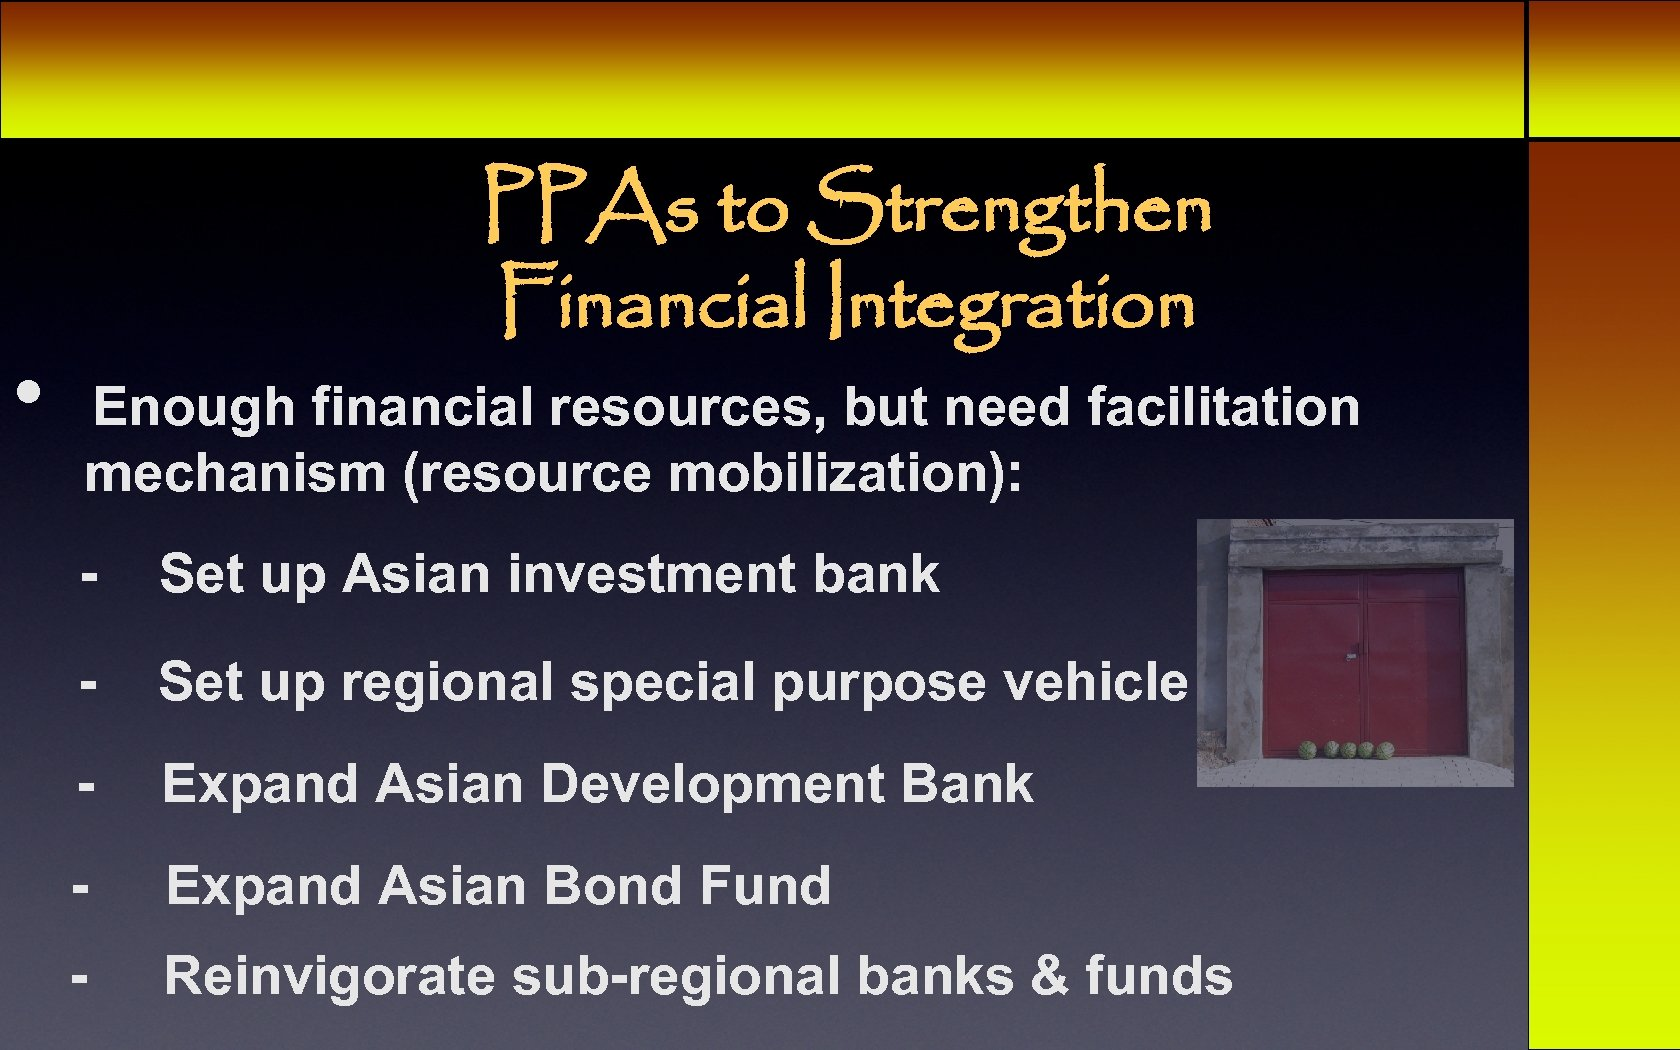 • PPAs to Strengthen Financial Integration Enough financial resources, but need facilitation mechanism